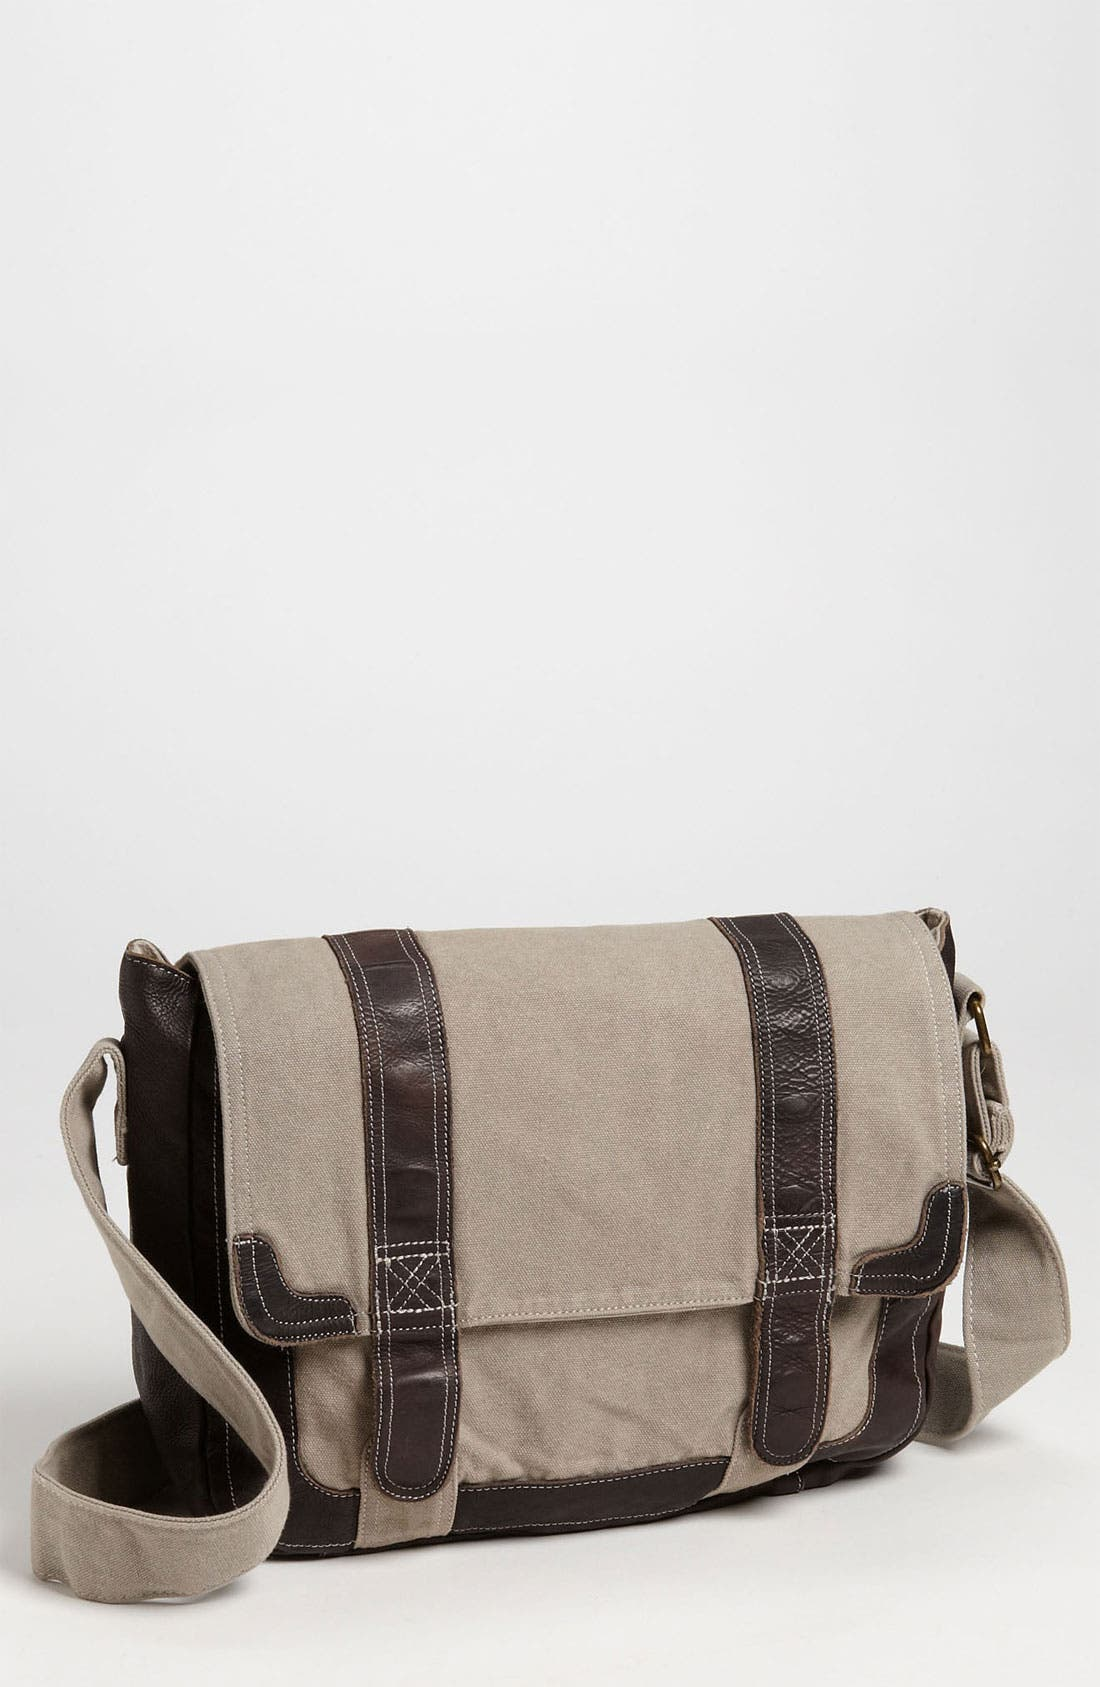 Main Image - Bed Stu 'Belos' Messenger Bag